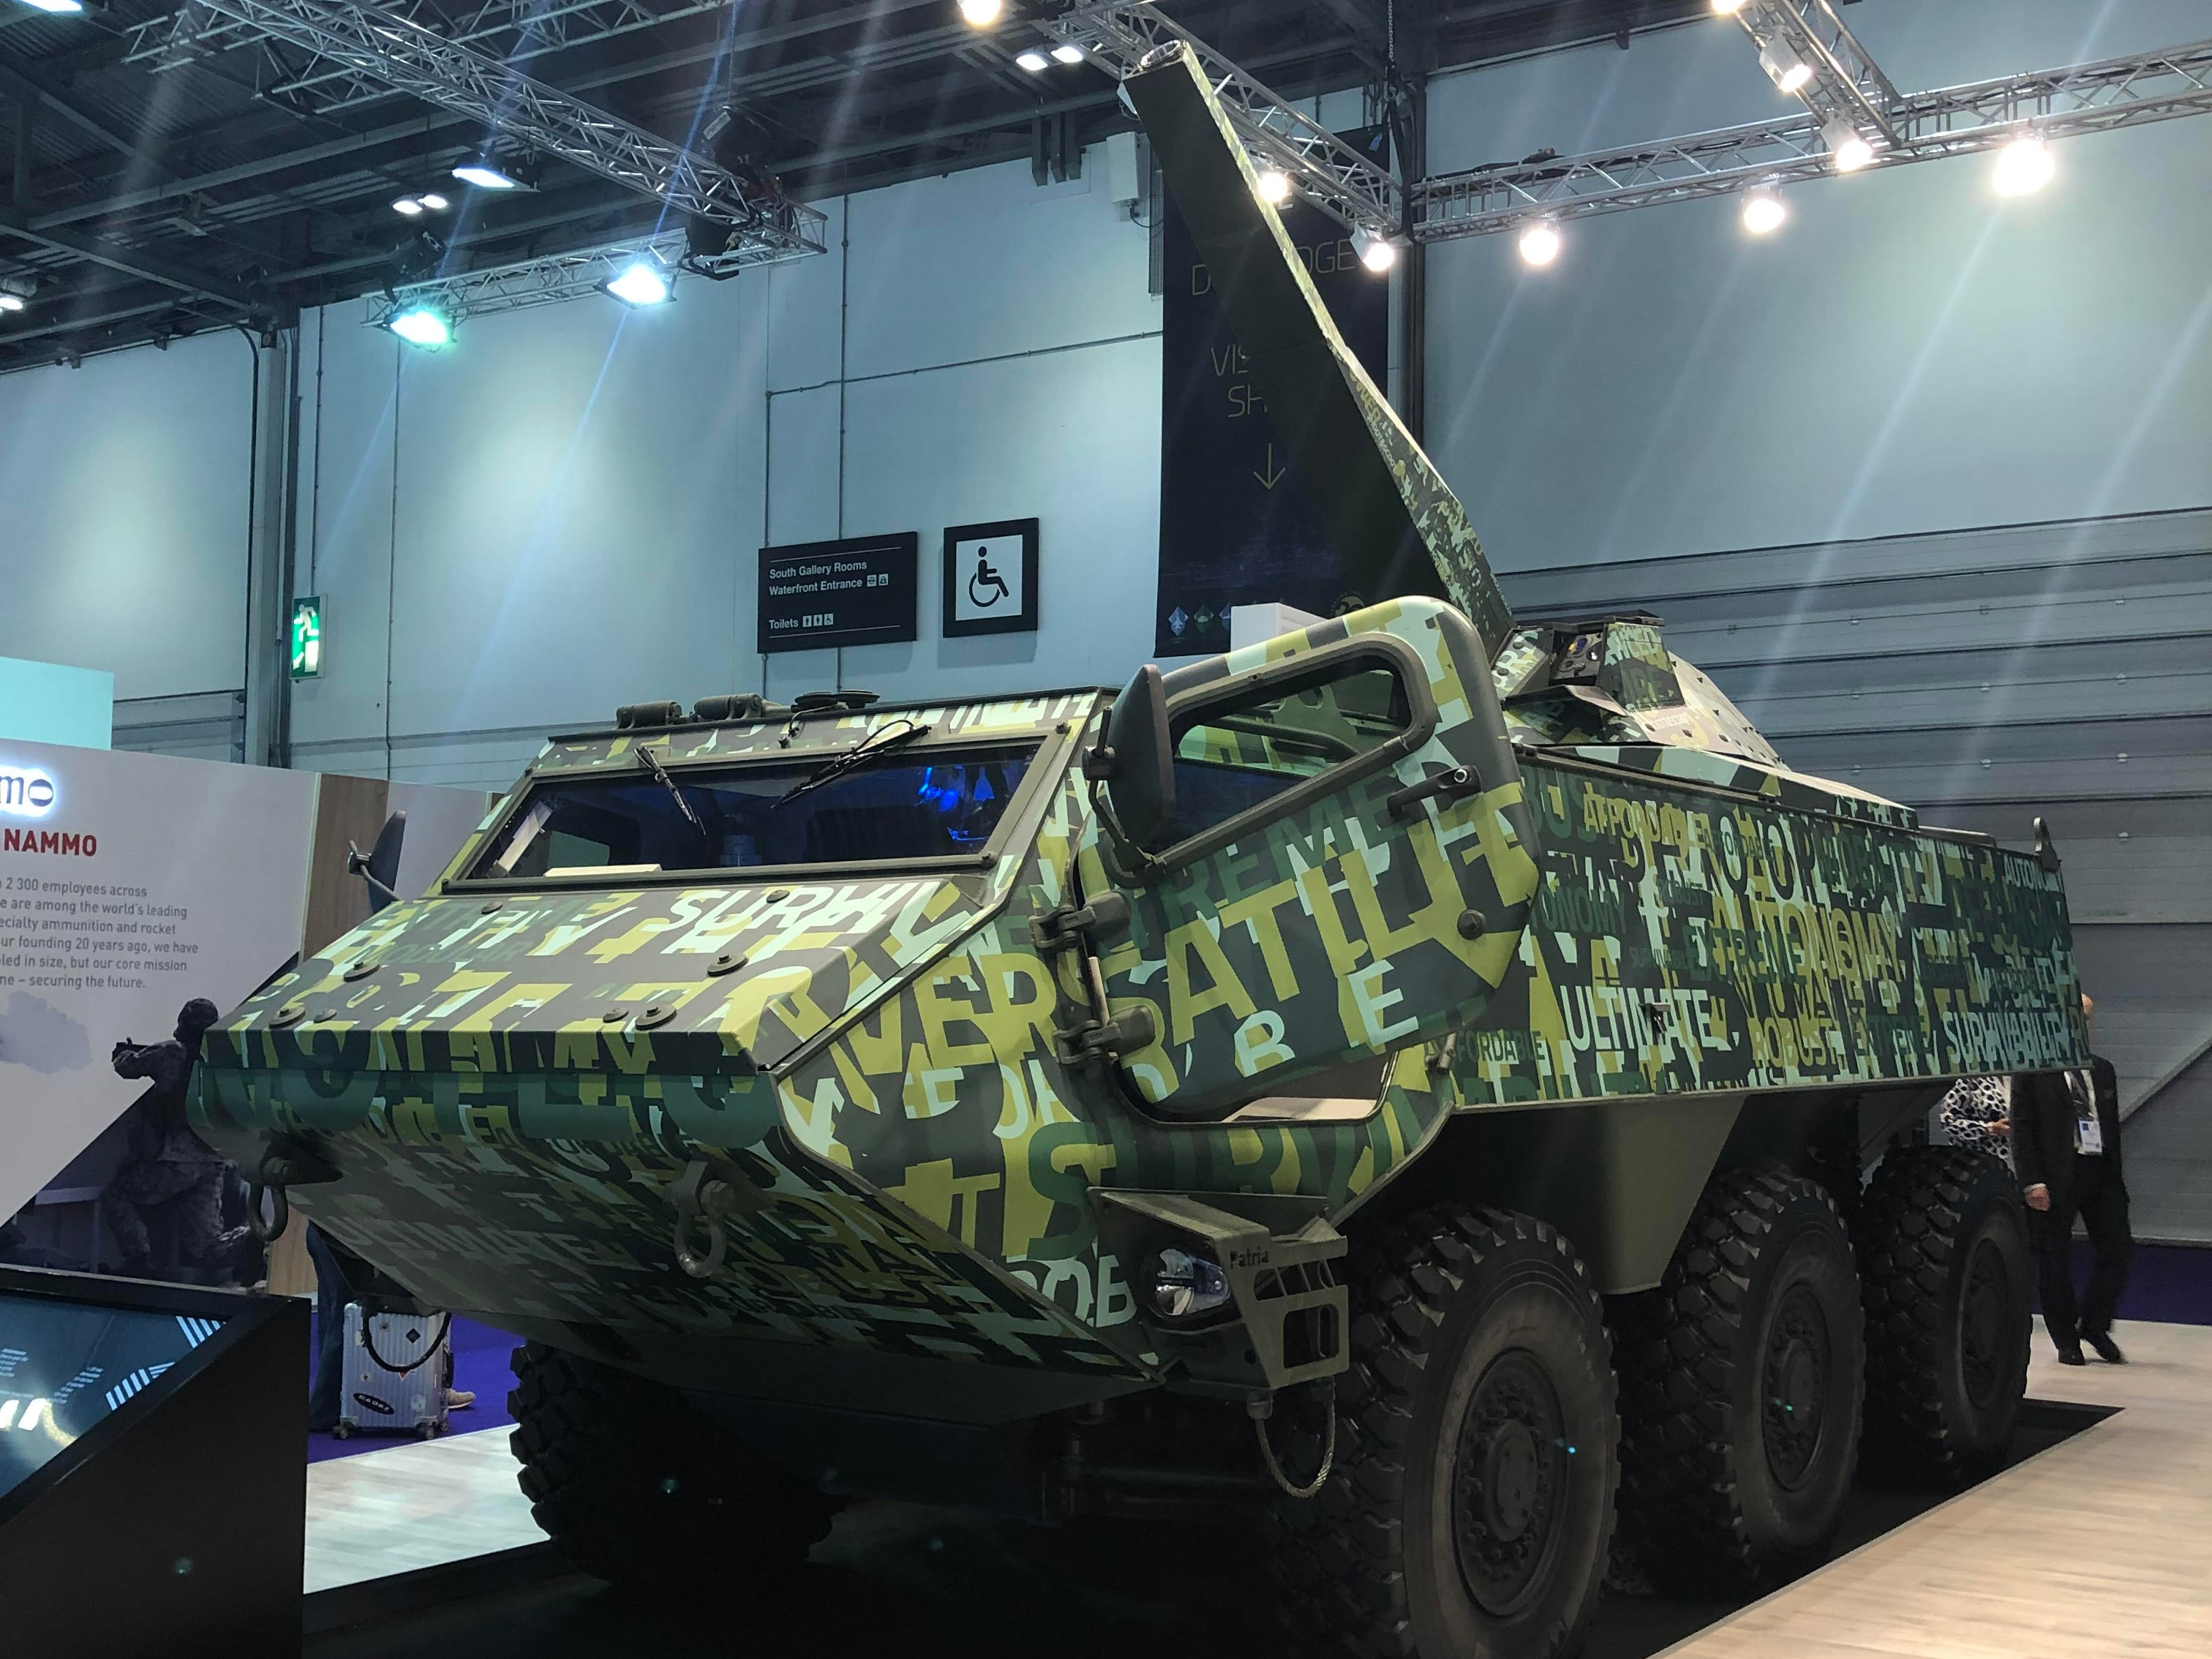 Finnish company Patria brought its armored wheeled vehicle with the 120mm mortar system it calls Nemo to DSEI in London in 2019. (Photo by Jen Judson/Staff)